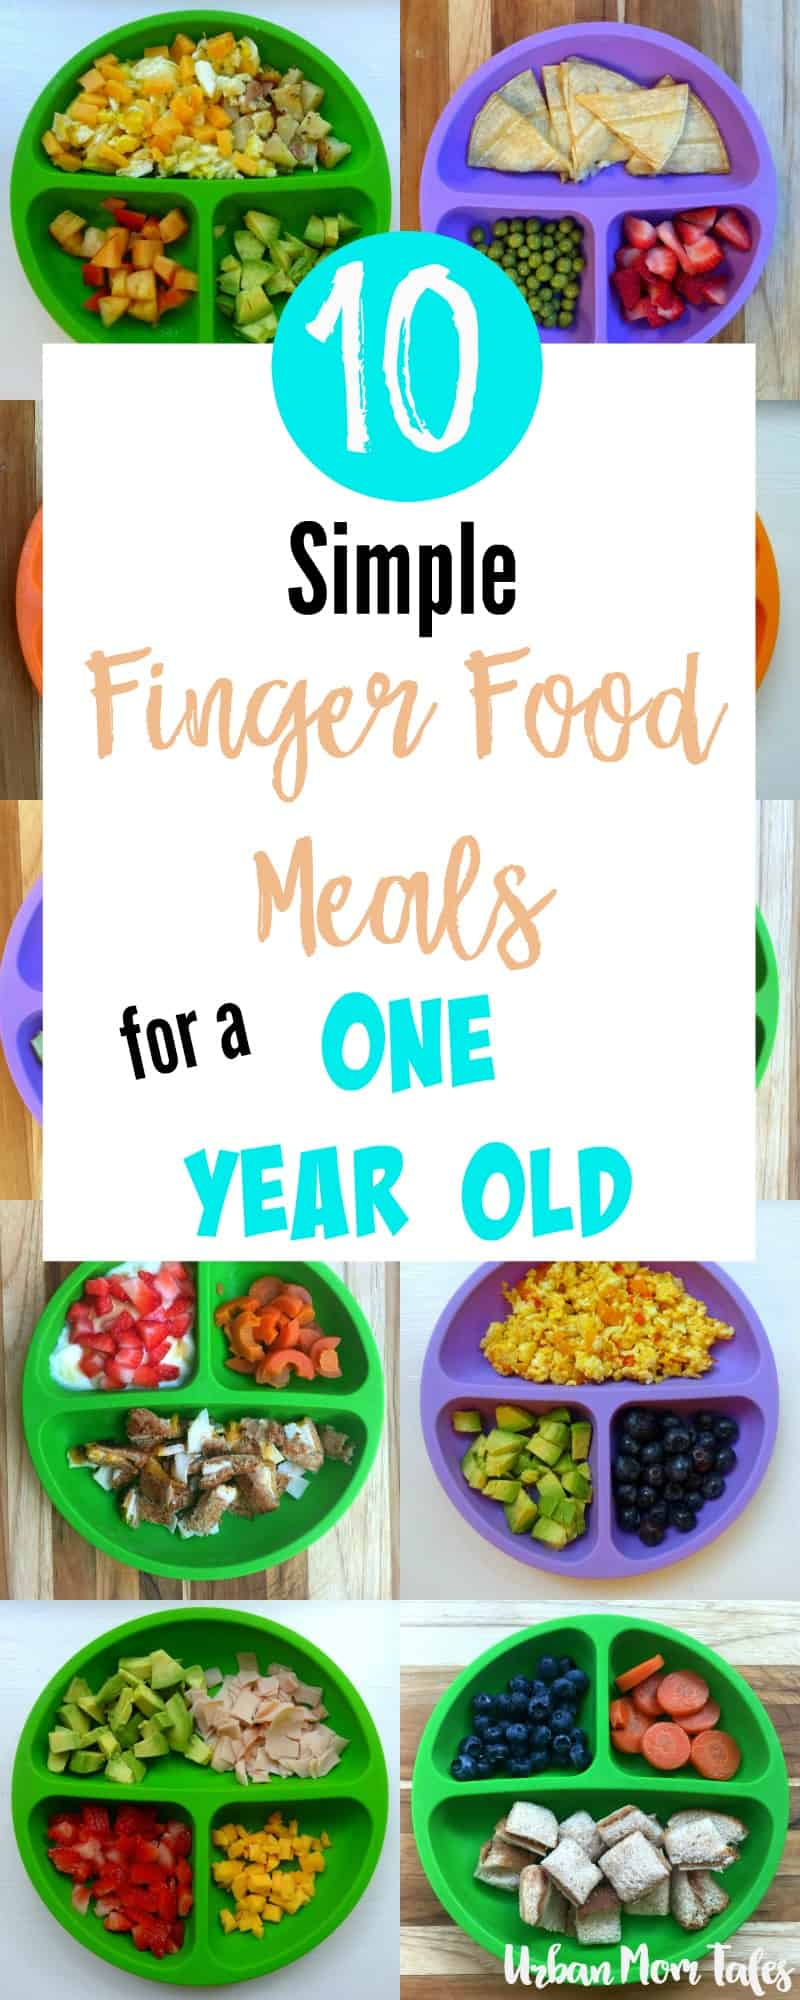 10 simple finger food meals for a one year old · urban mom tales